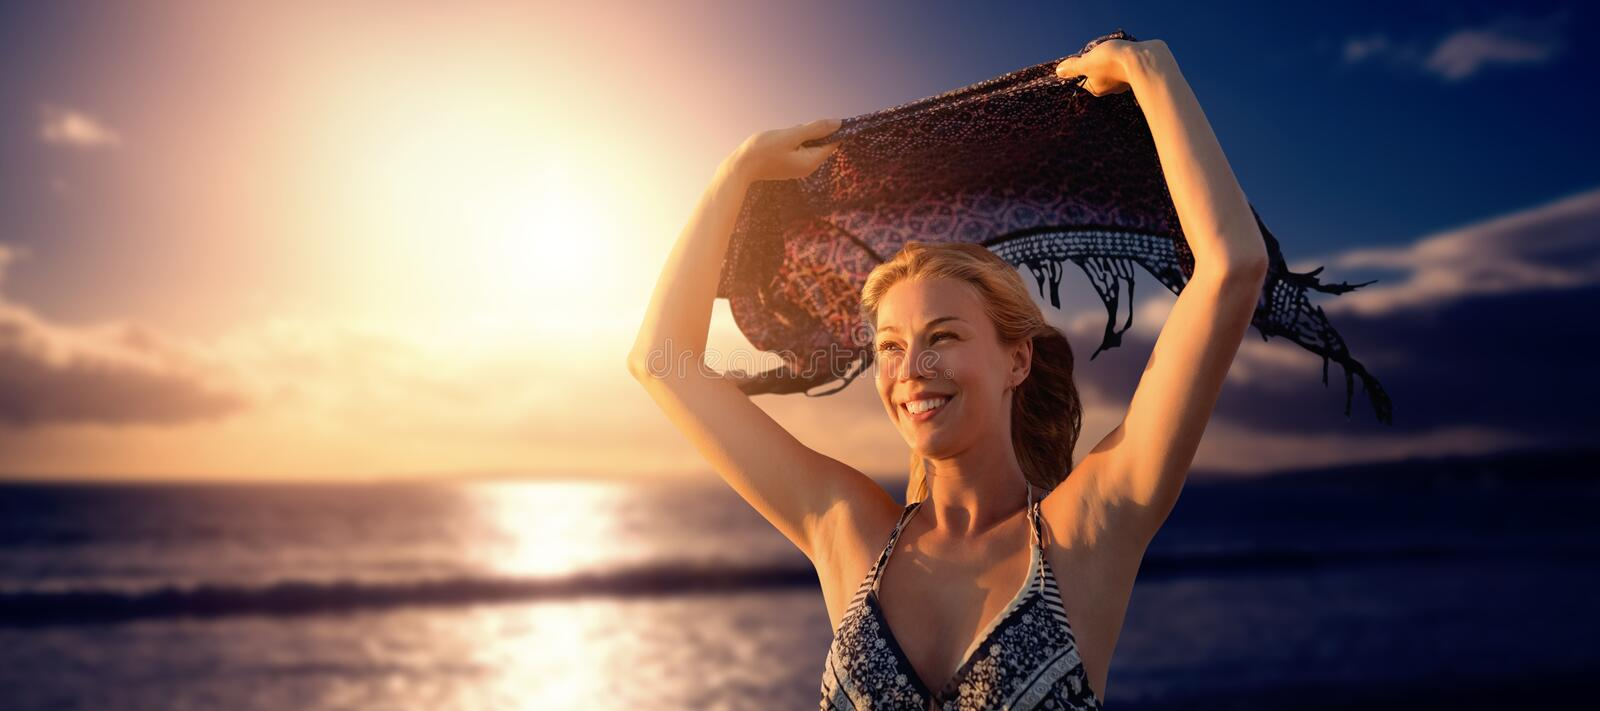 Composite image of smiling woman holding scarf in the air stock images